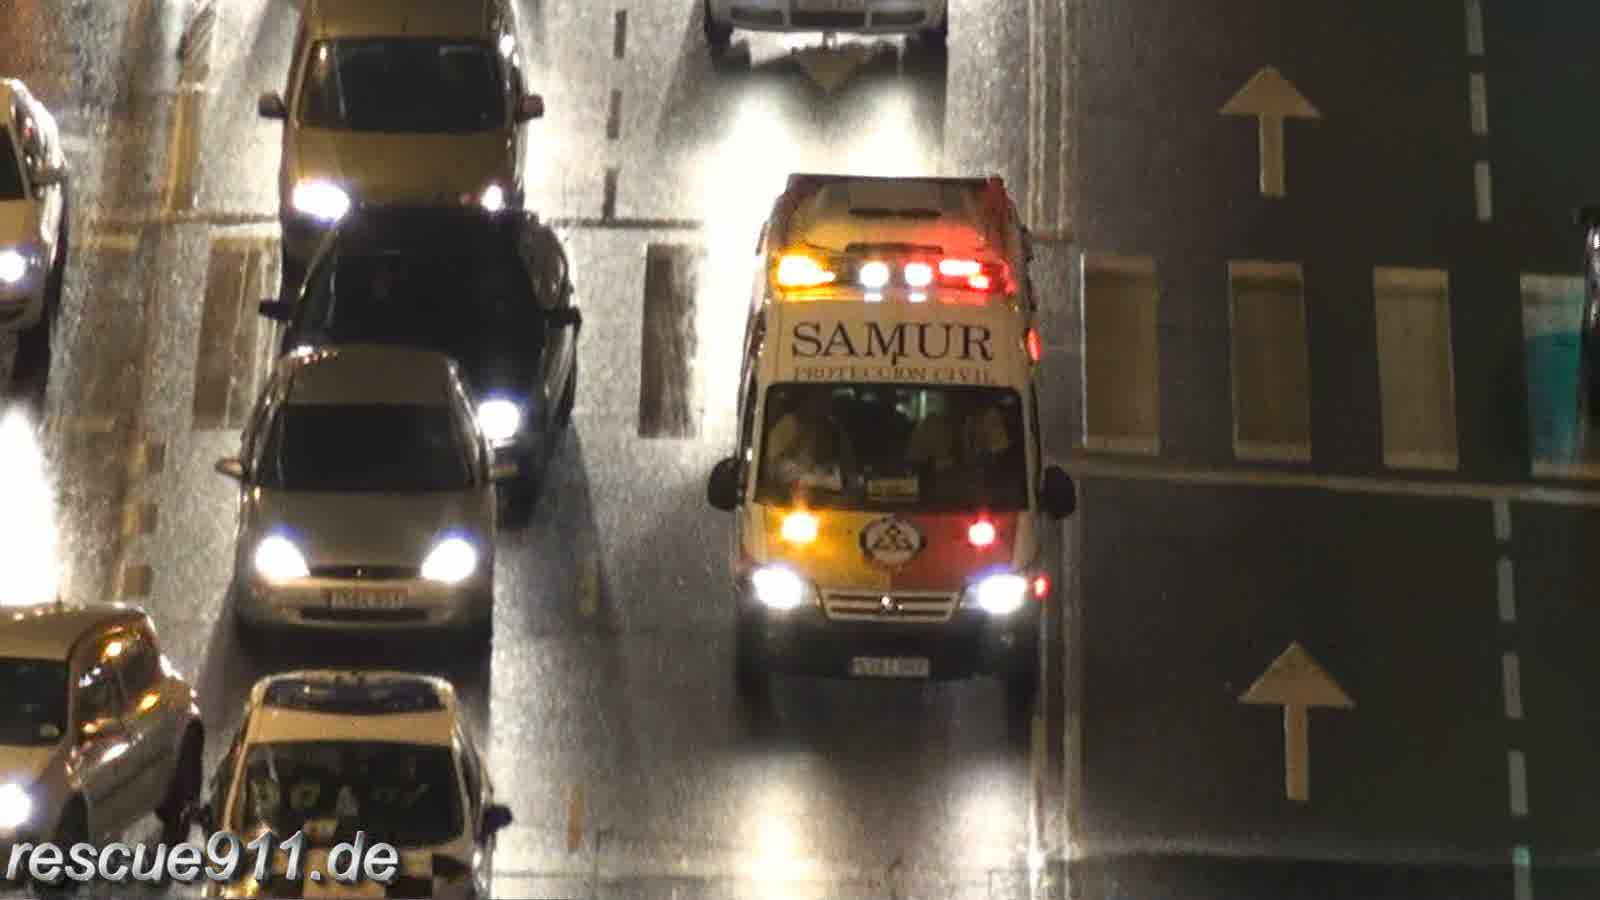 Ambulancia Salud + Ambulancia SAMUR Madrid (stream)